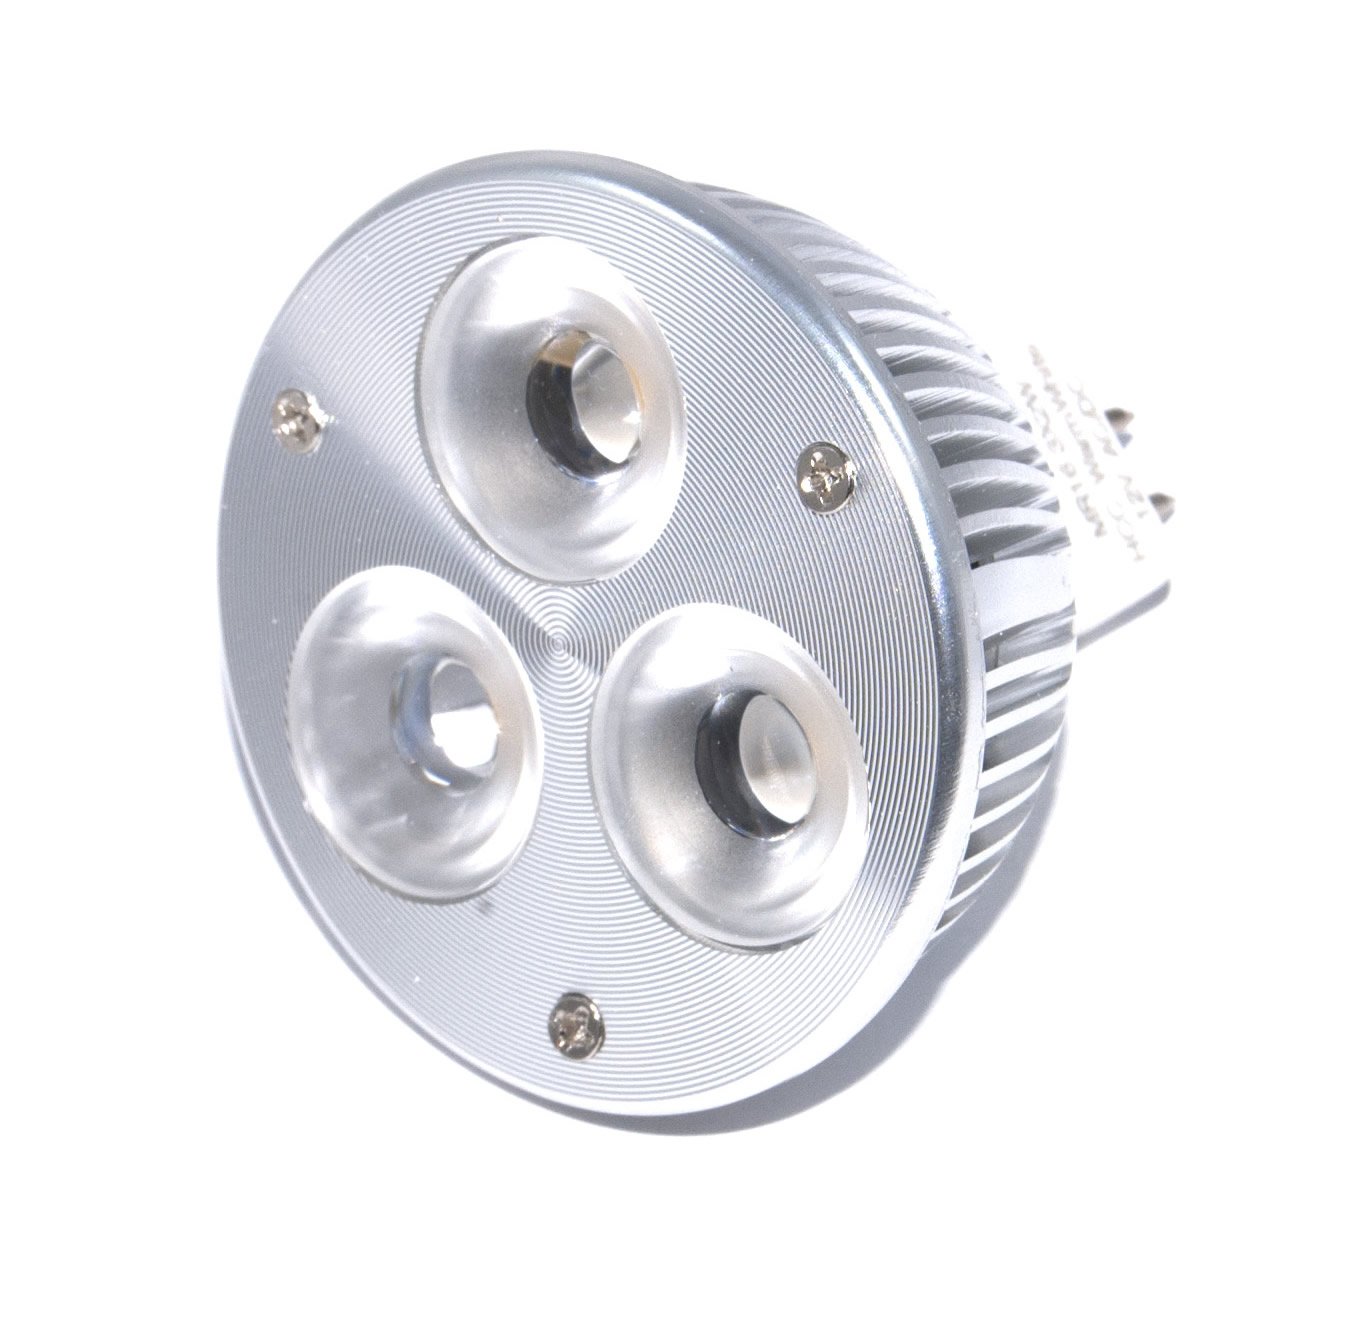 Epistar mr16 gu53 powerled 3x2w power led spot 6 watt warmwit klik op de afbeelding voor een vergroting parisarafo Image collections